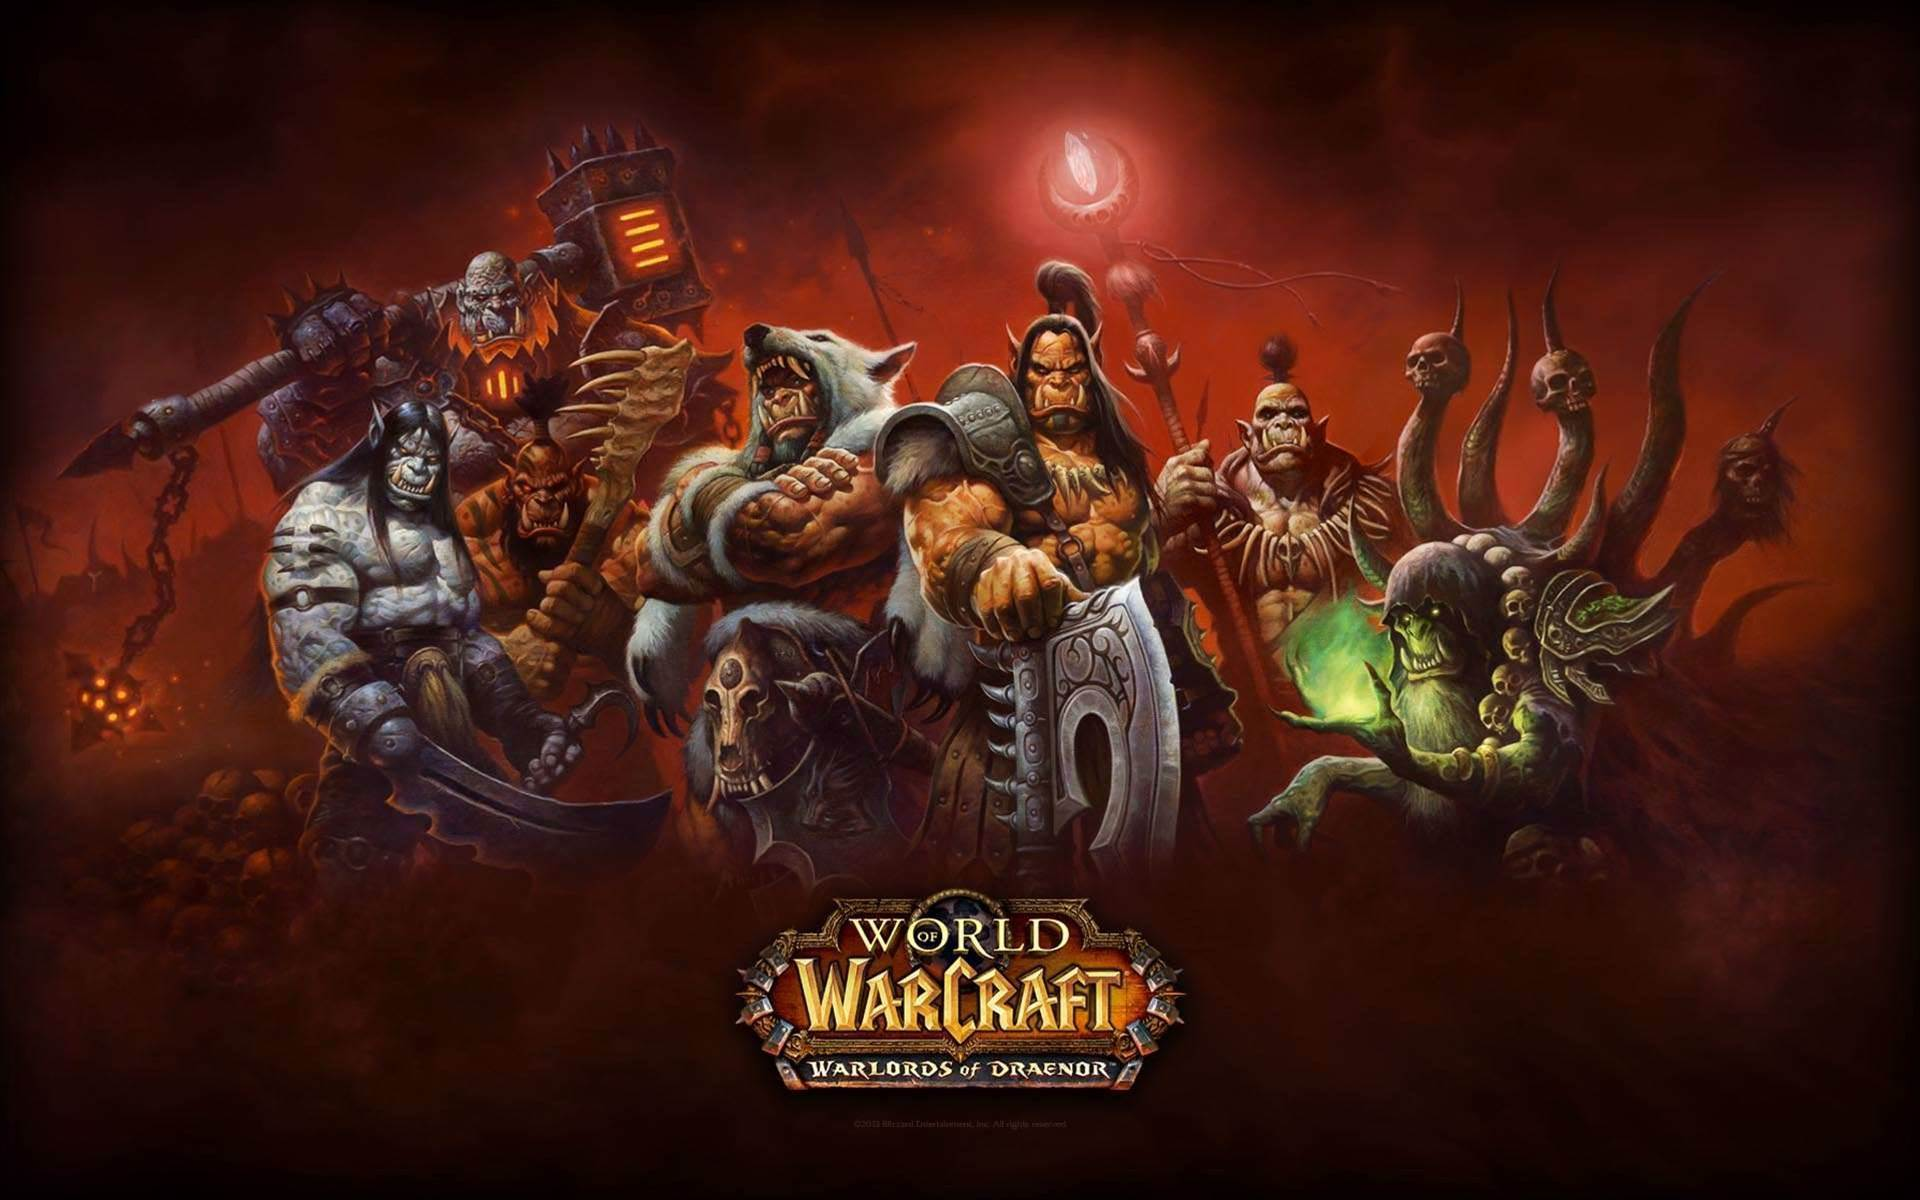 Warlords of Draenor pre-orders open, with instant level 90 boost!